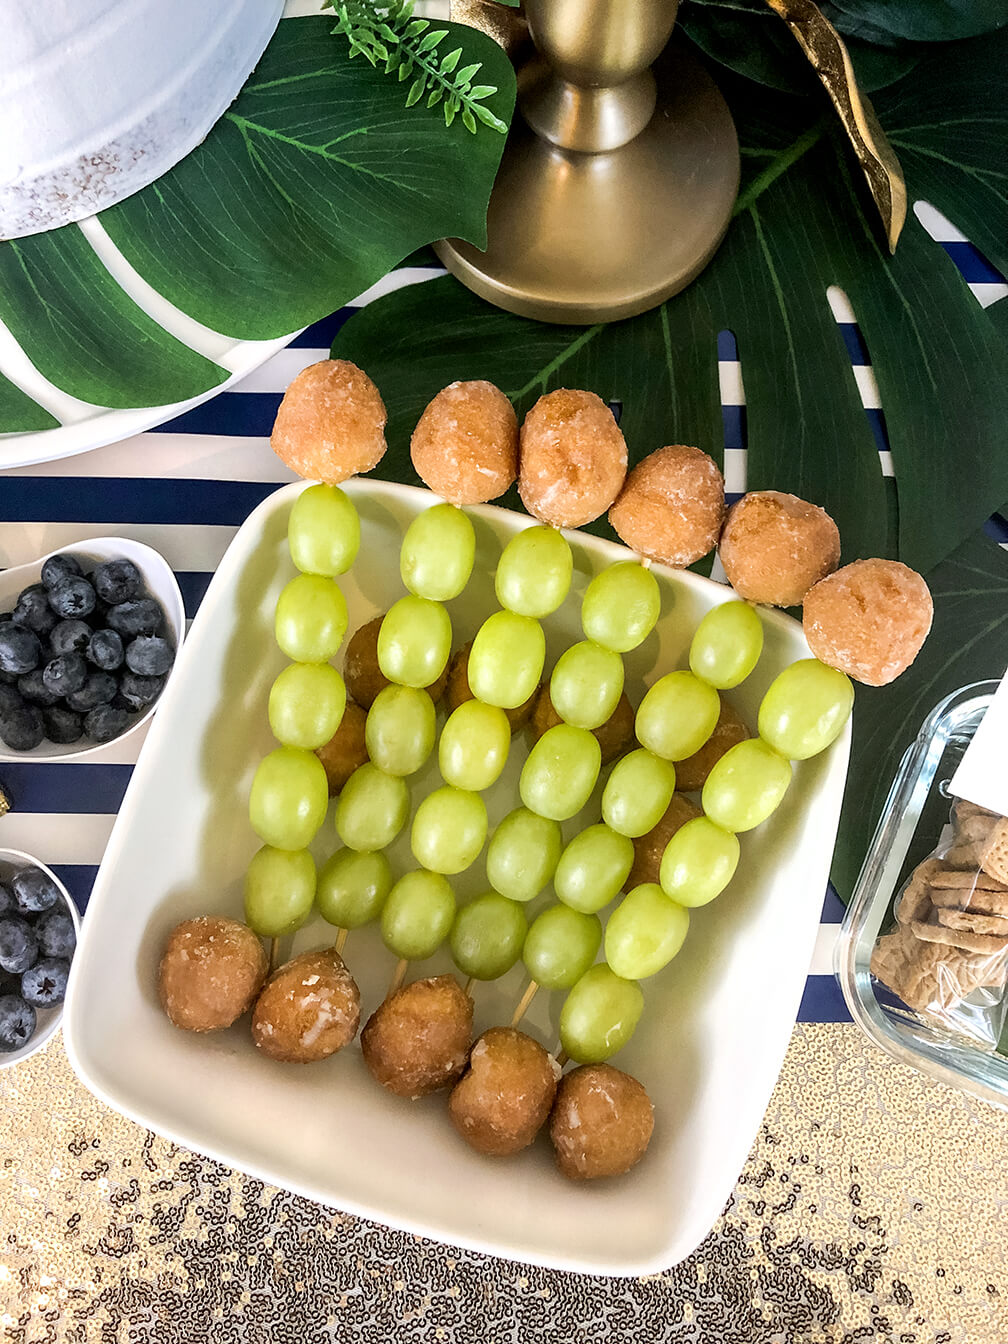 Gorilla sticks make a great treat at a glam safari baby shower